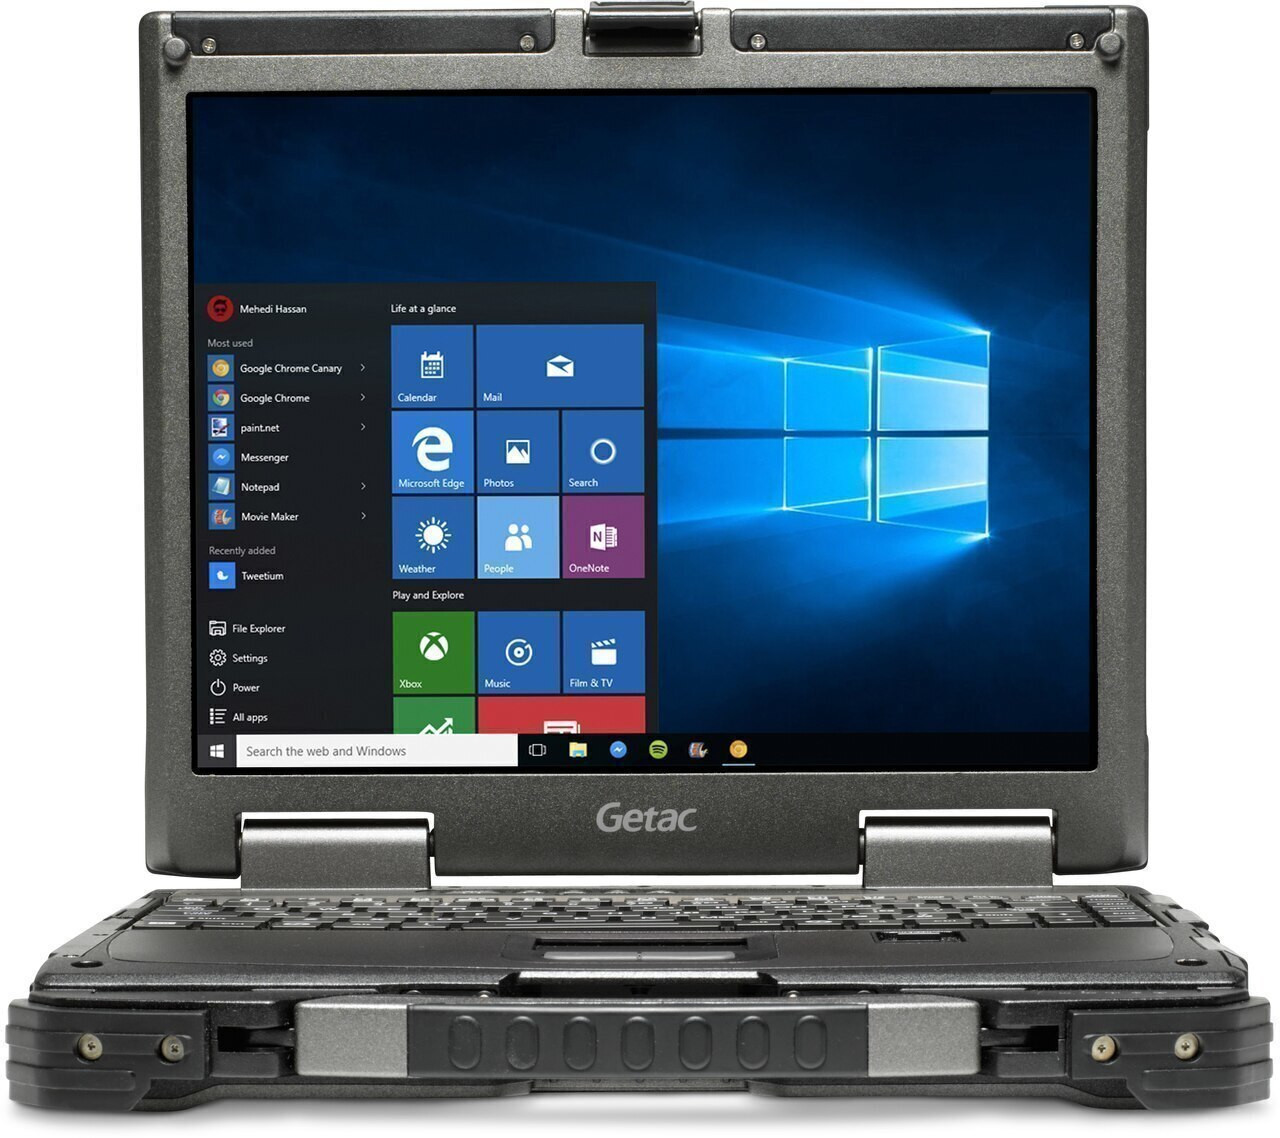 "Getac B300 G7 ,Intel Core i5-8350U vPro Processor 1.7GHz,13.3"" w/ DVD Super-Multi+Smart Card Reader,Win10 Pro x64 w/16GB RAM ,256GB SSD,Sunlight Readable (LCD+Touch),Backlit KBD with Fingerprint,Wifi+BT+GPS+Passthrough,HDMI, Express Card 54,SD Card R"